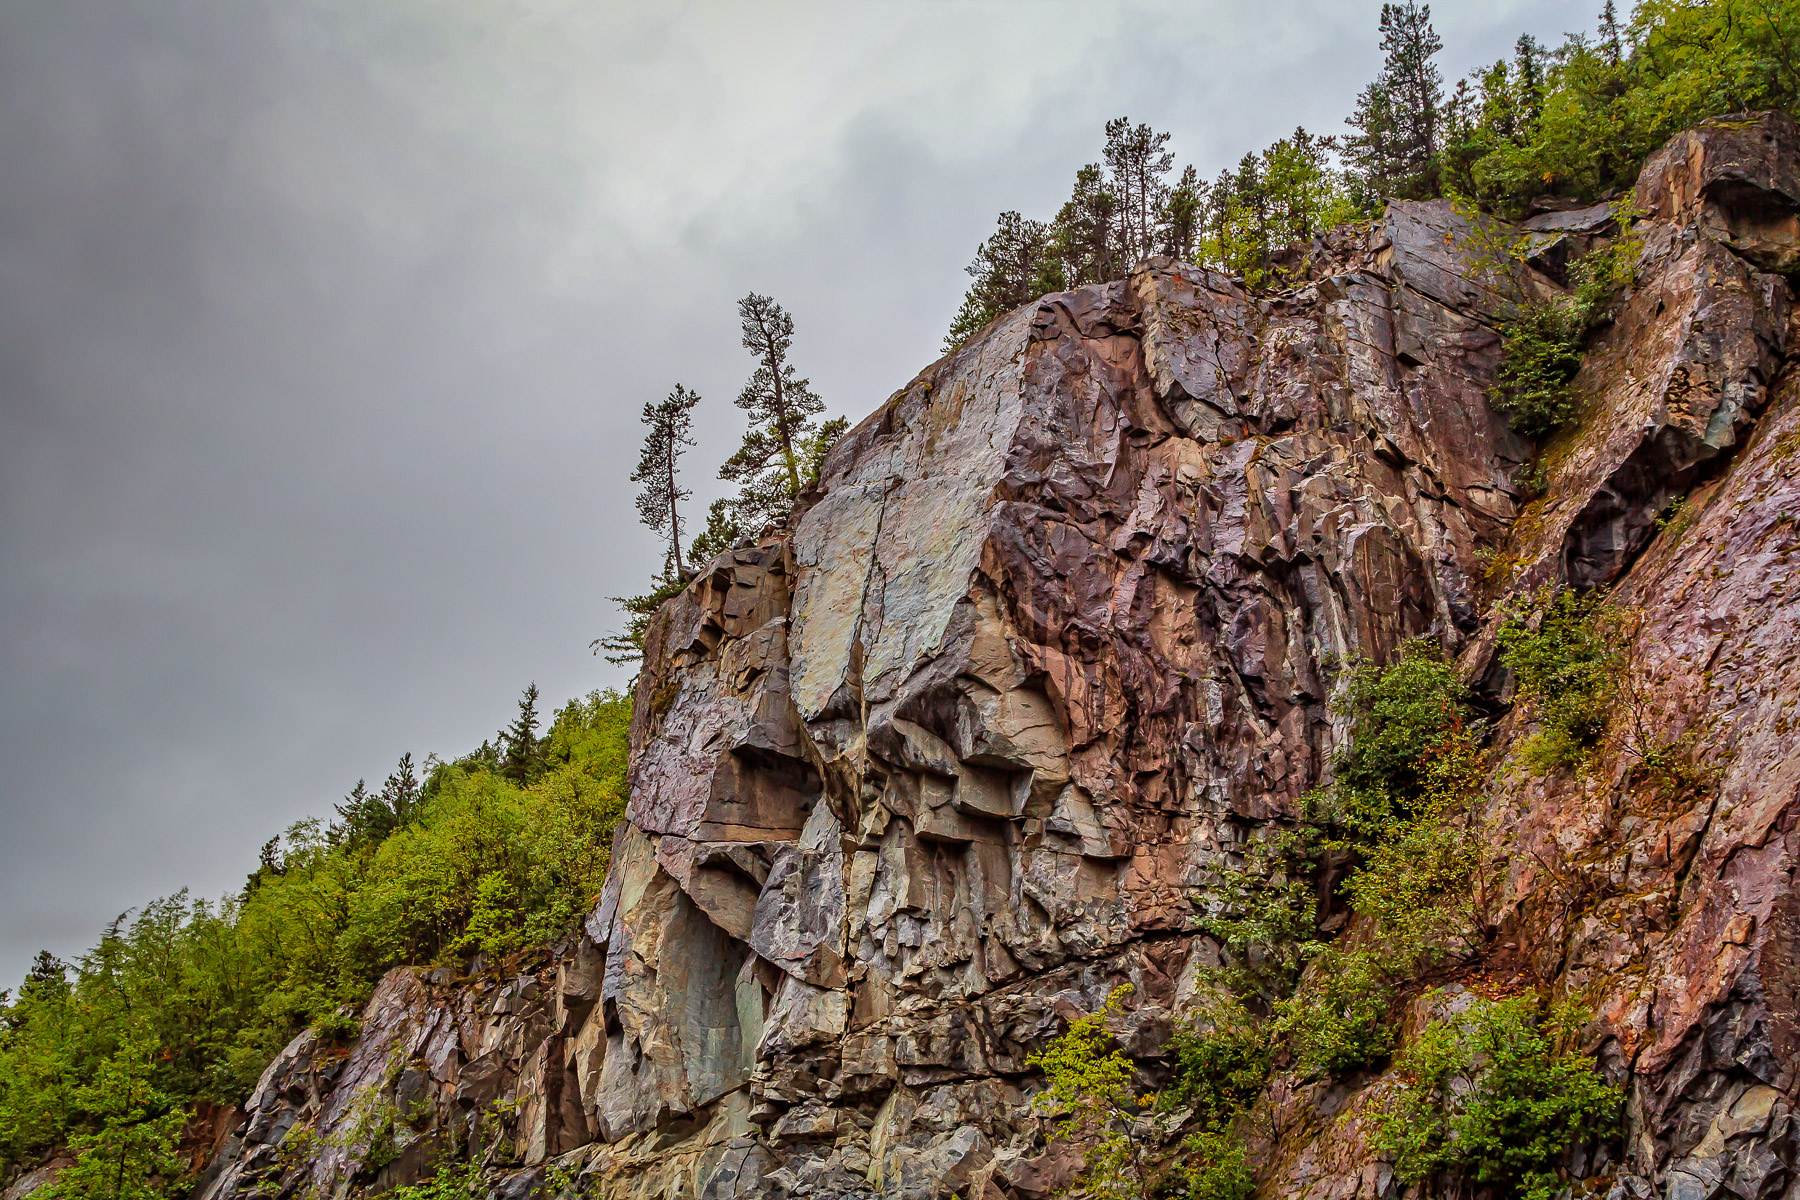 A rocky cliff face high above the Klondike Highway, Alaska, just west of the border with British Columbia.